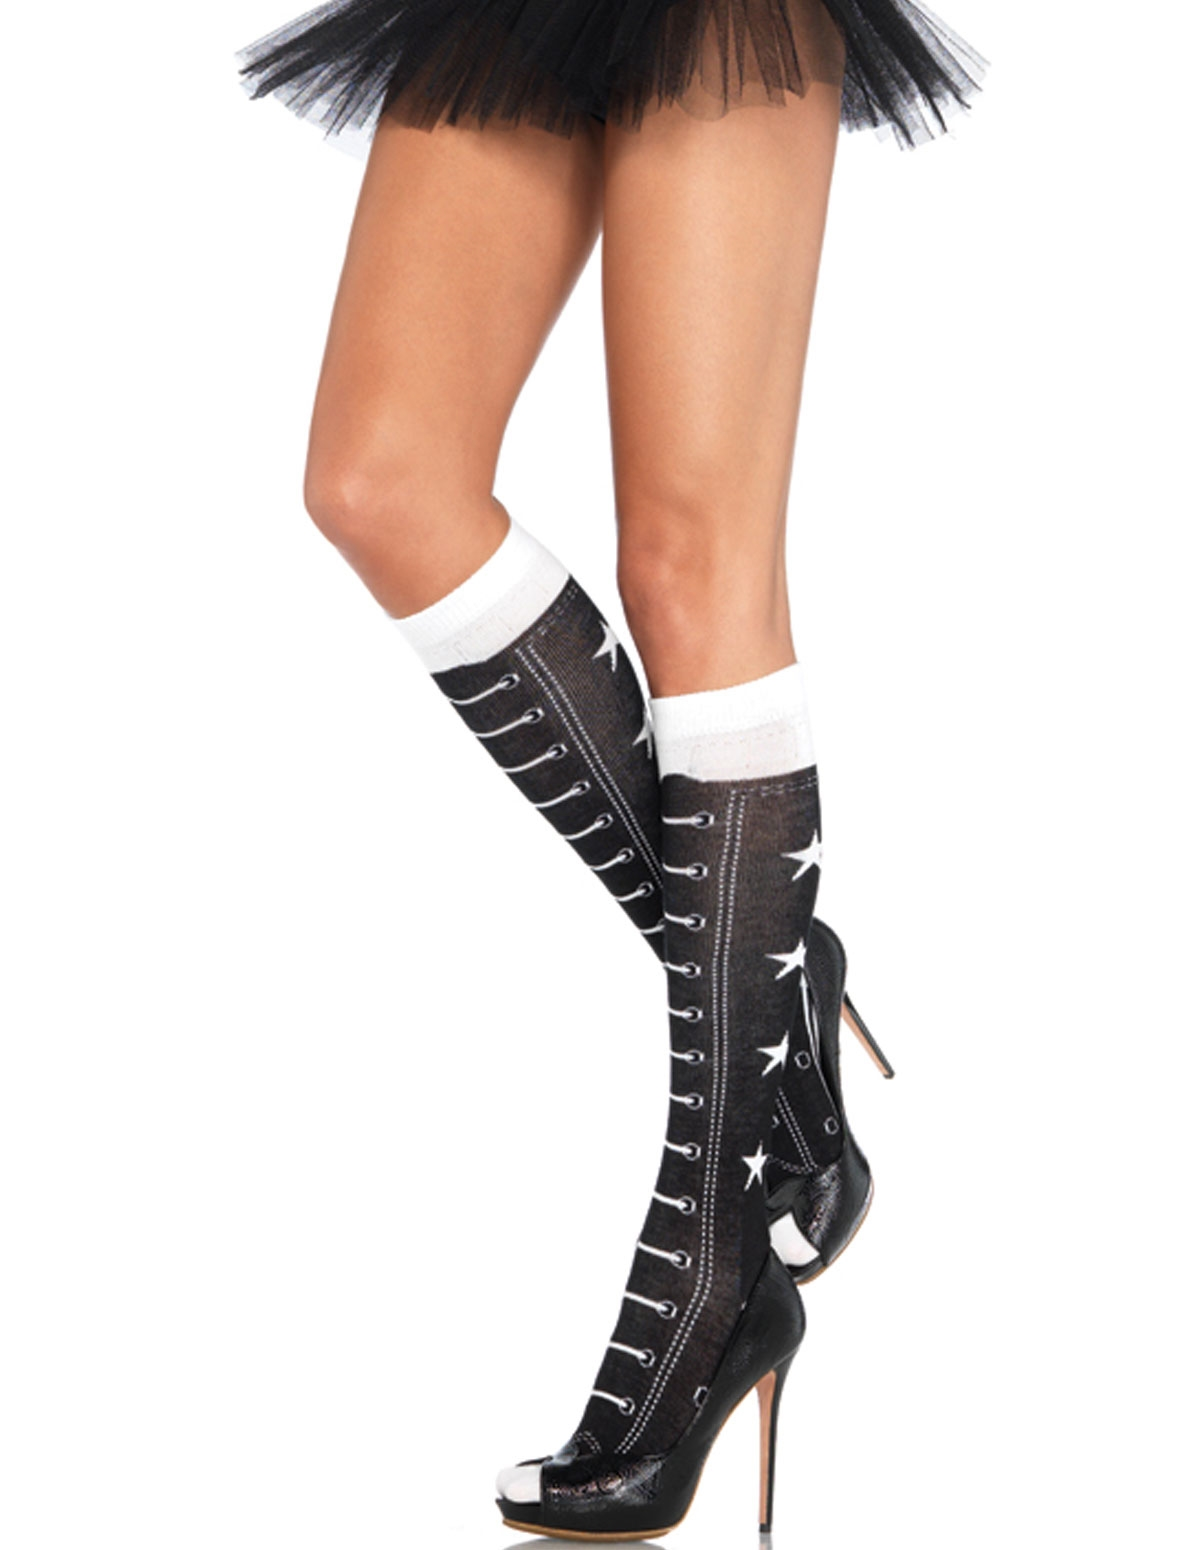 Acrylic Faux Lace Up Athletic Knee Highs